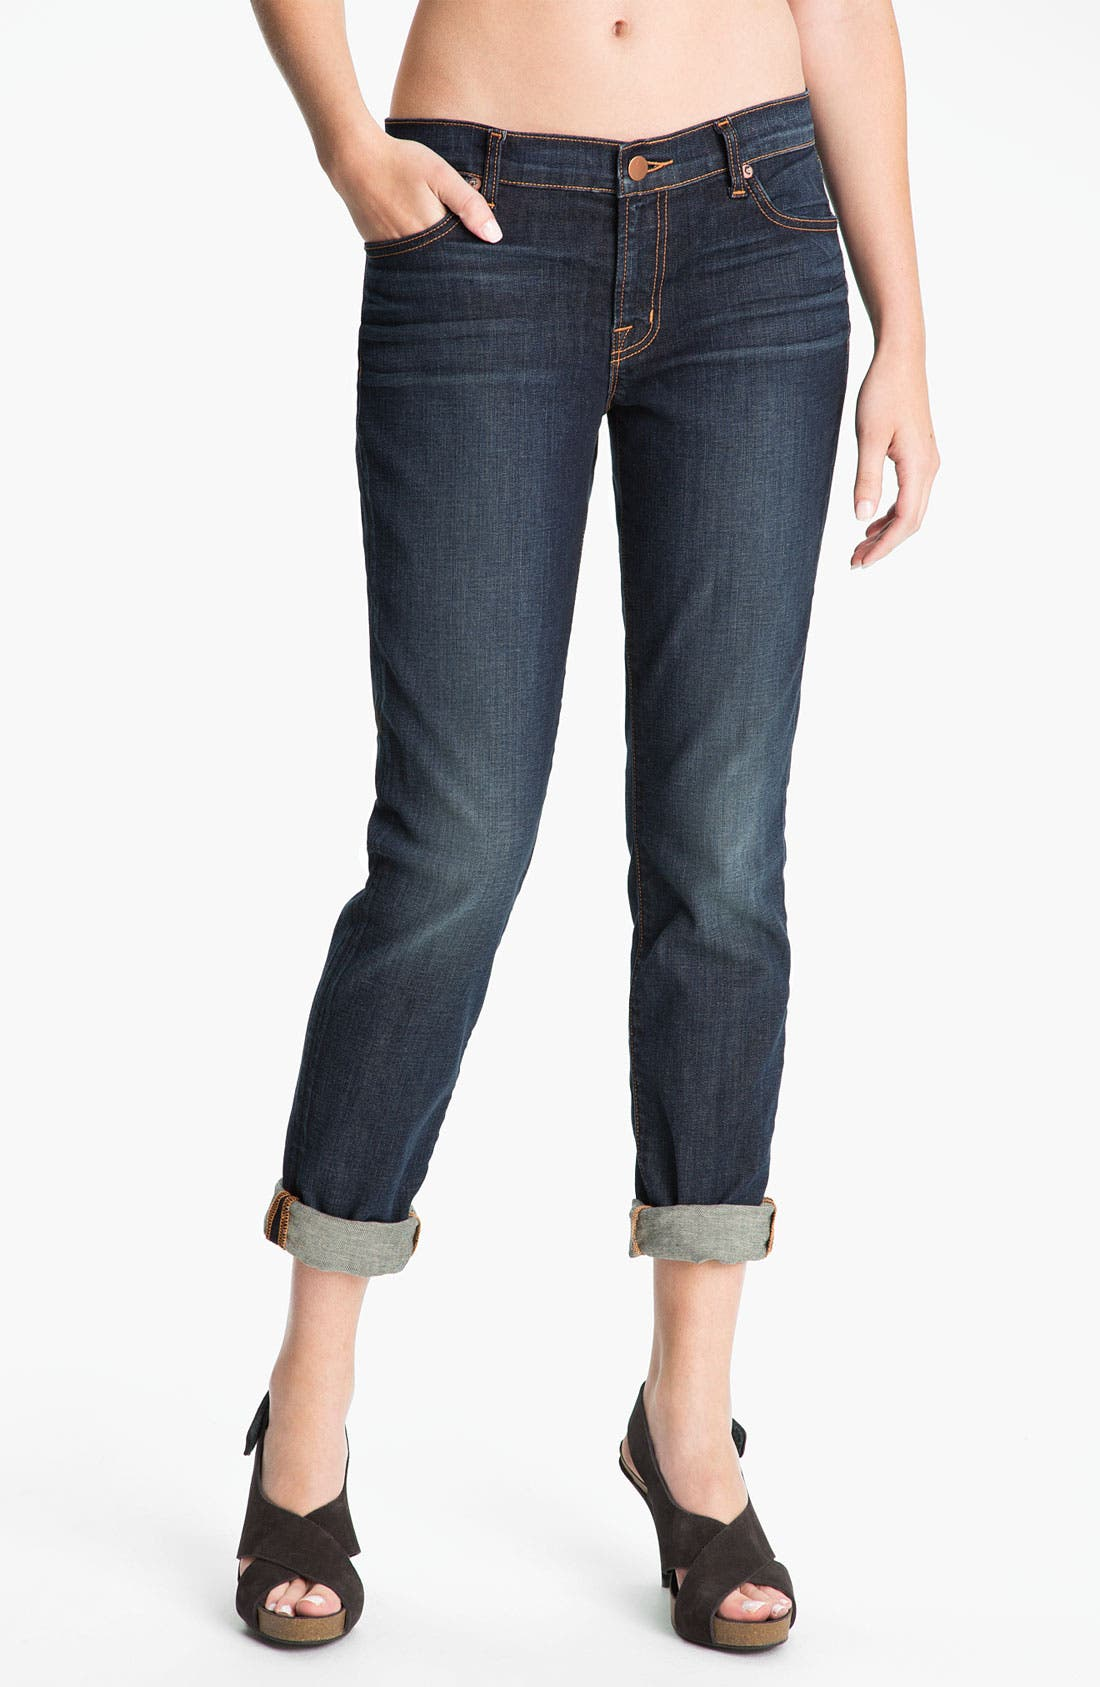 Alternate Image 1 Selected - J Brand 'Midori' Stretch Jeans (Dark Vintage)